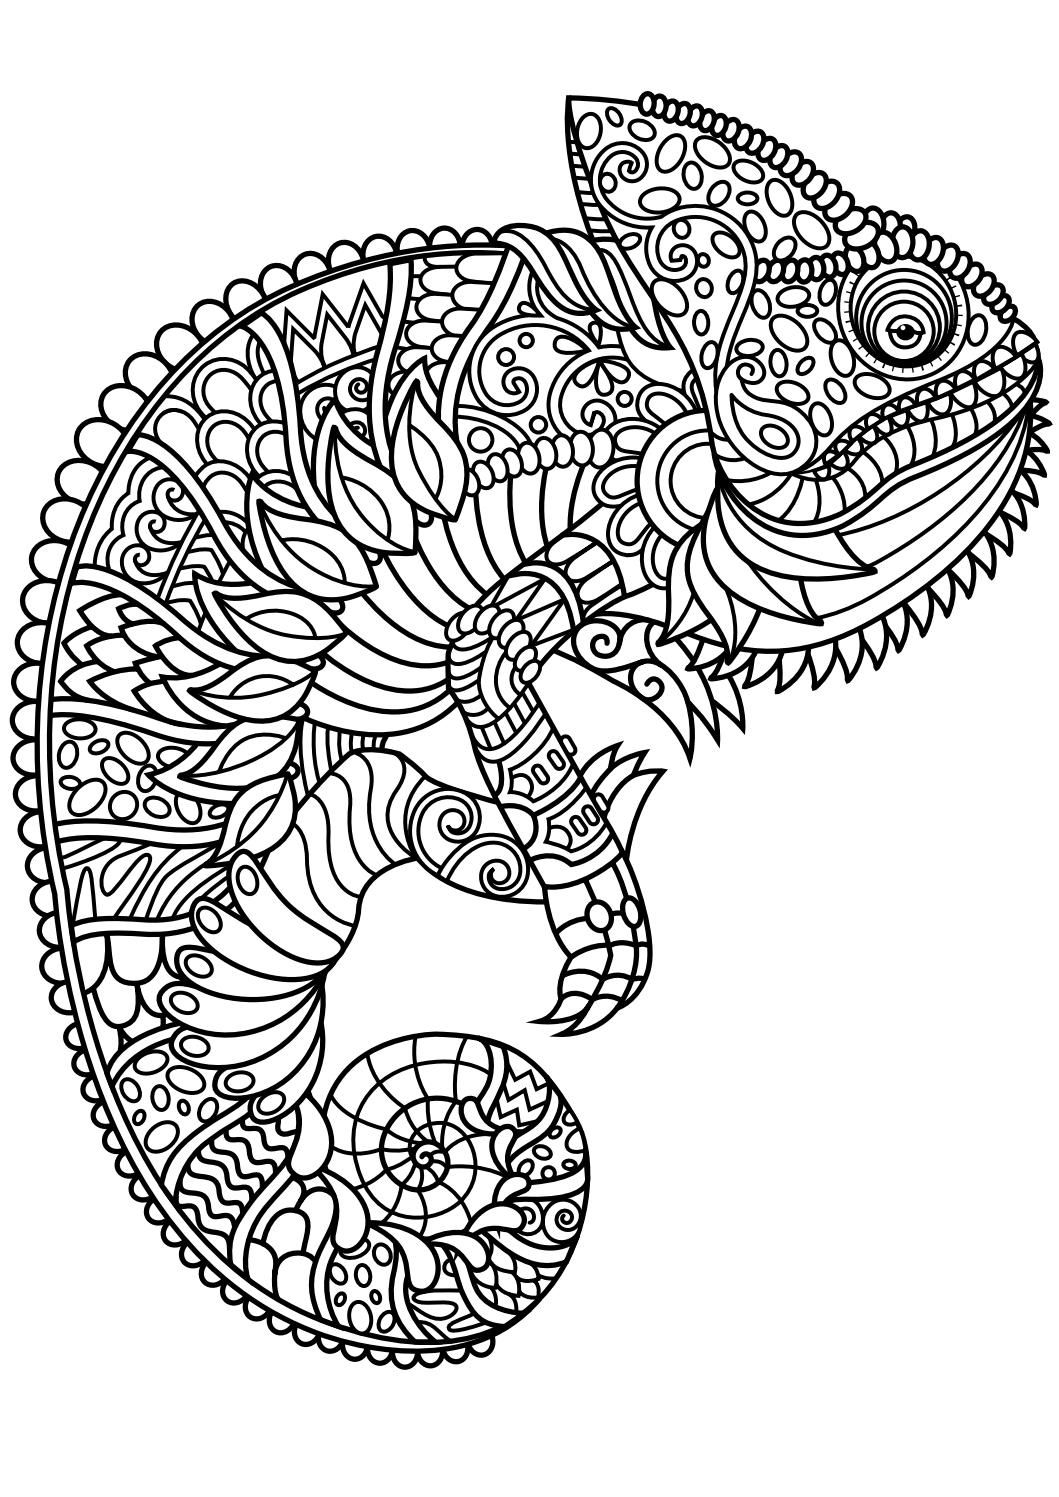 22 Free Mandala Coloring Pages Pdf Collection - Coloring Sheets